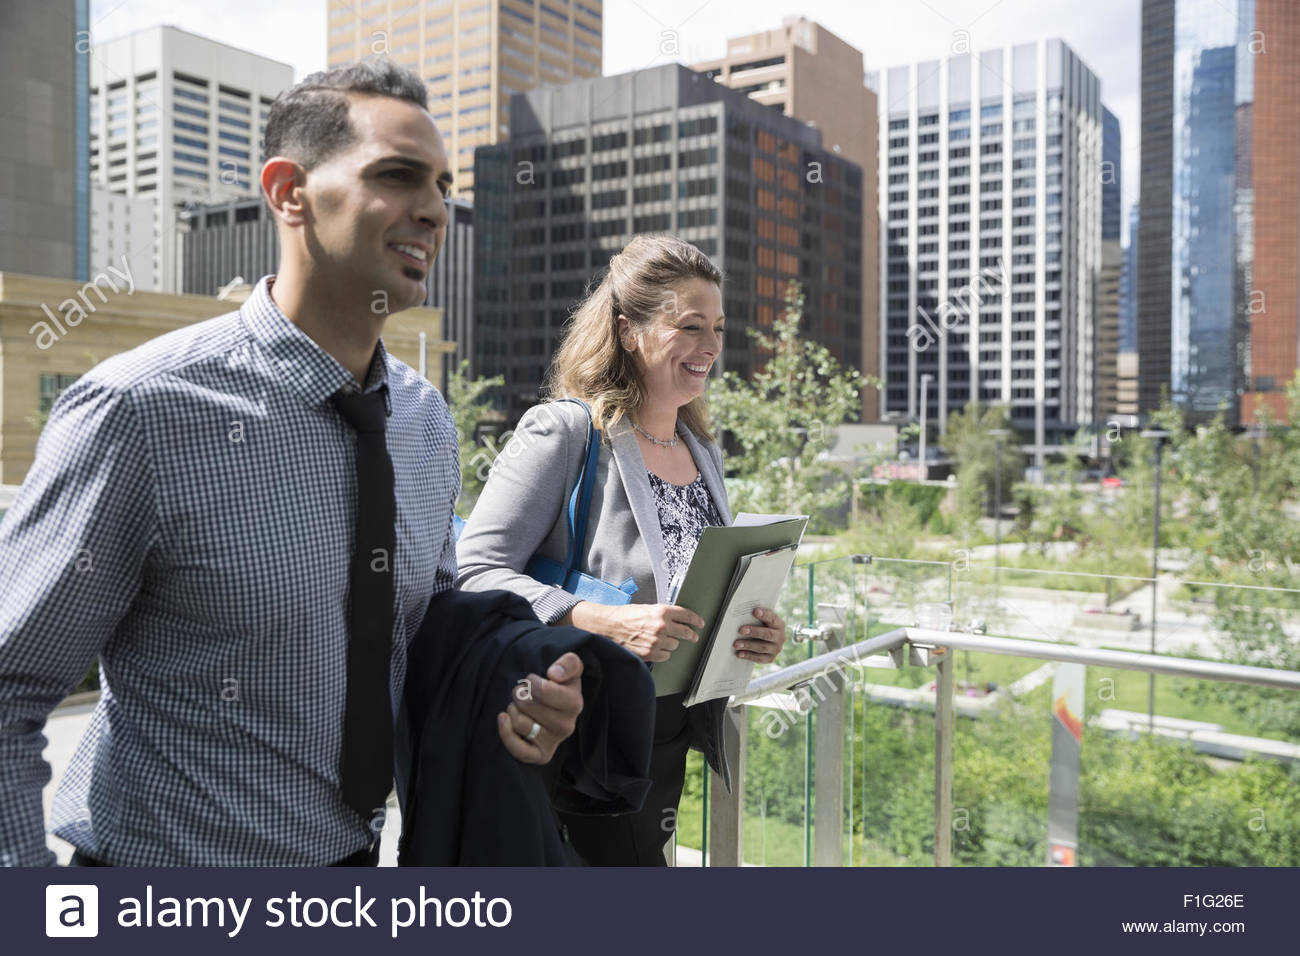 Business people walking in city - Stock Image